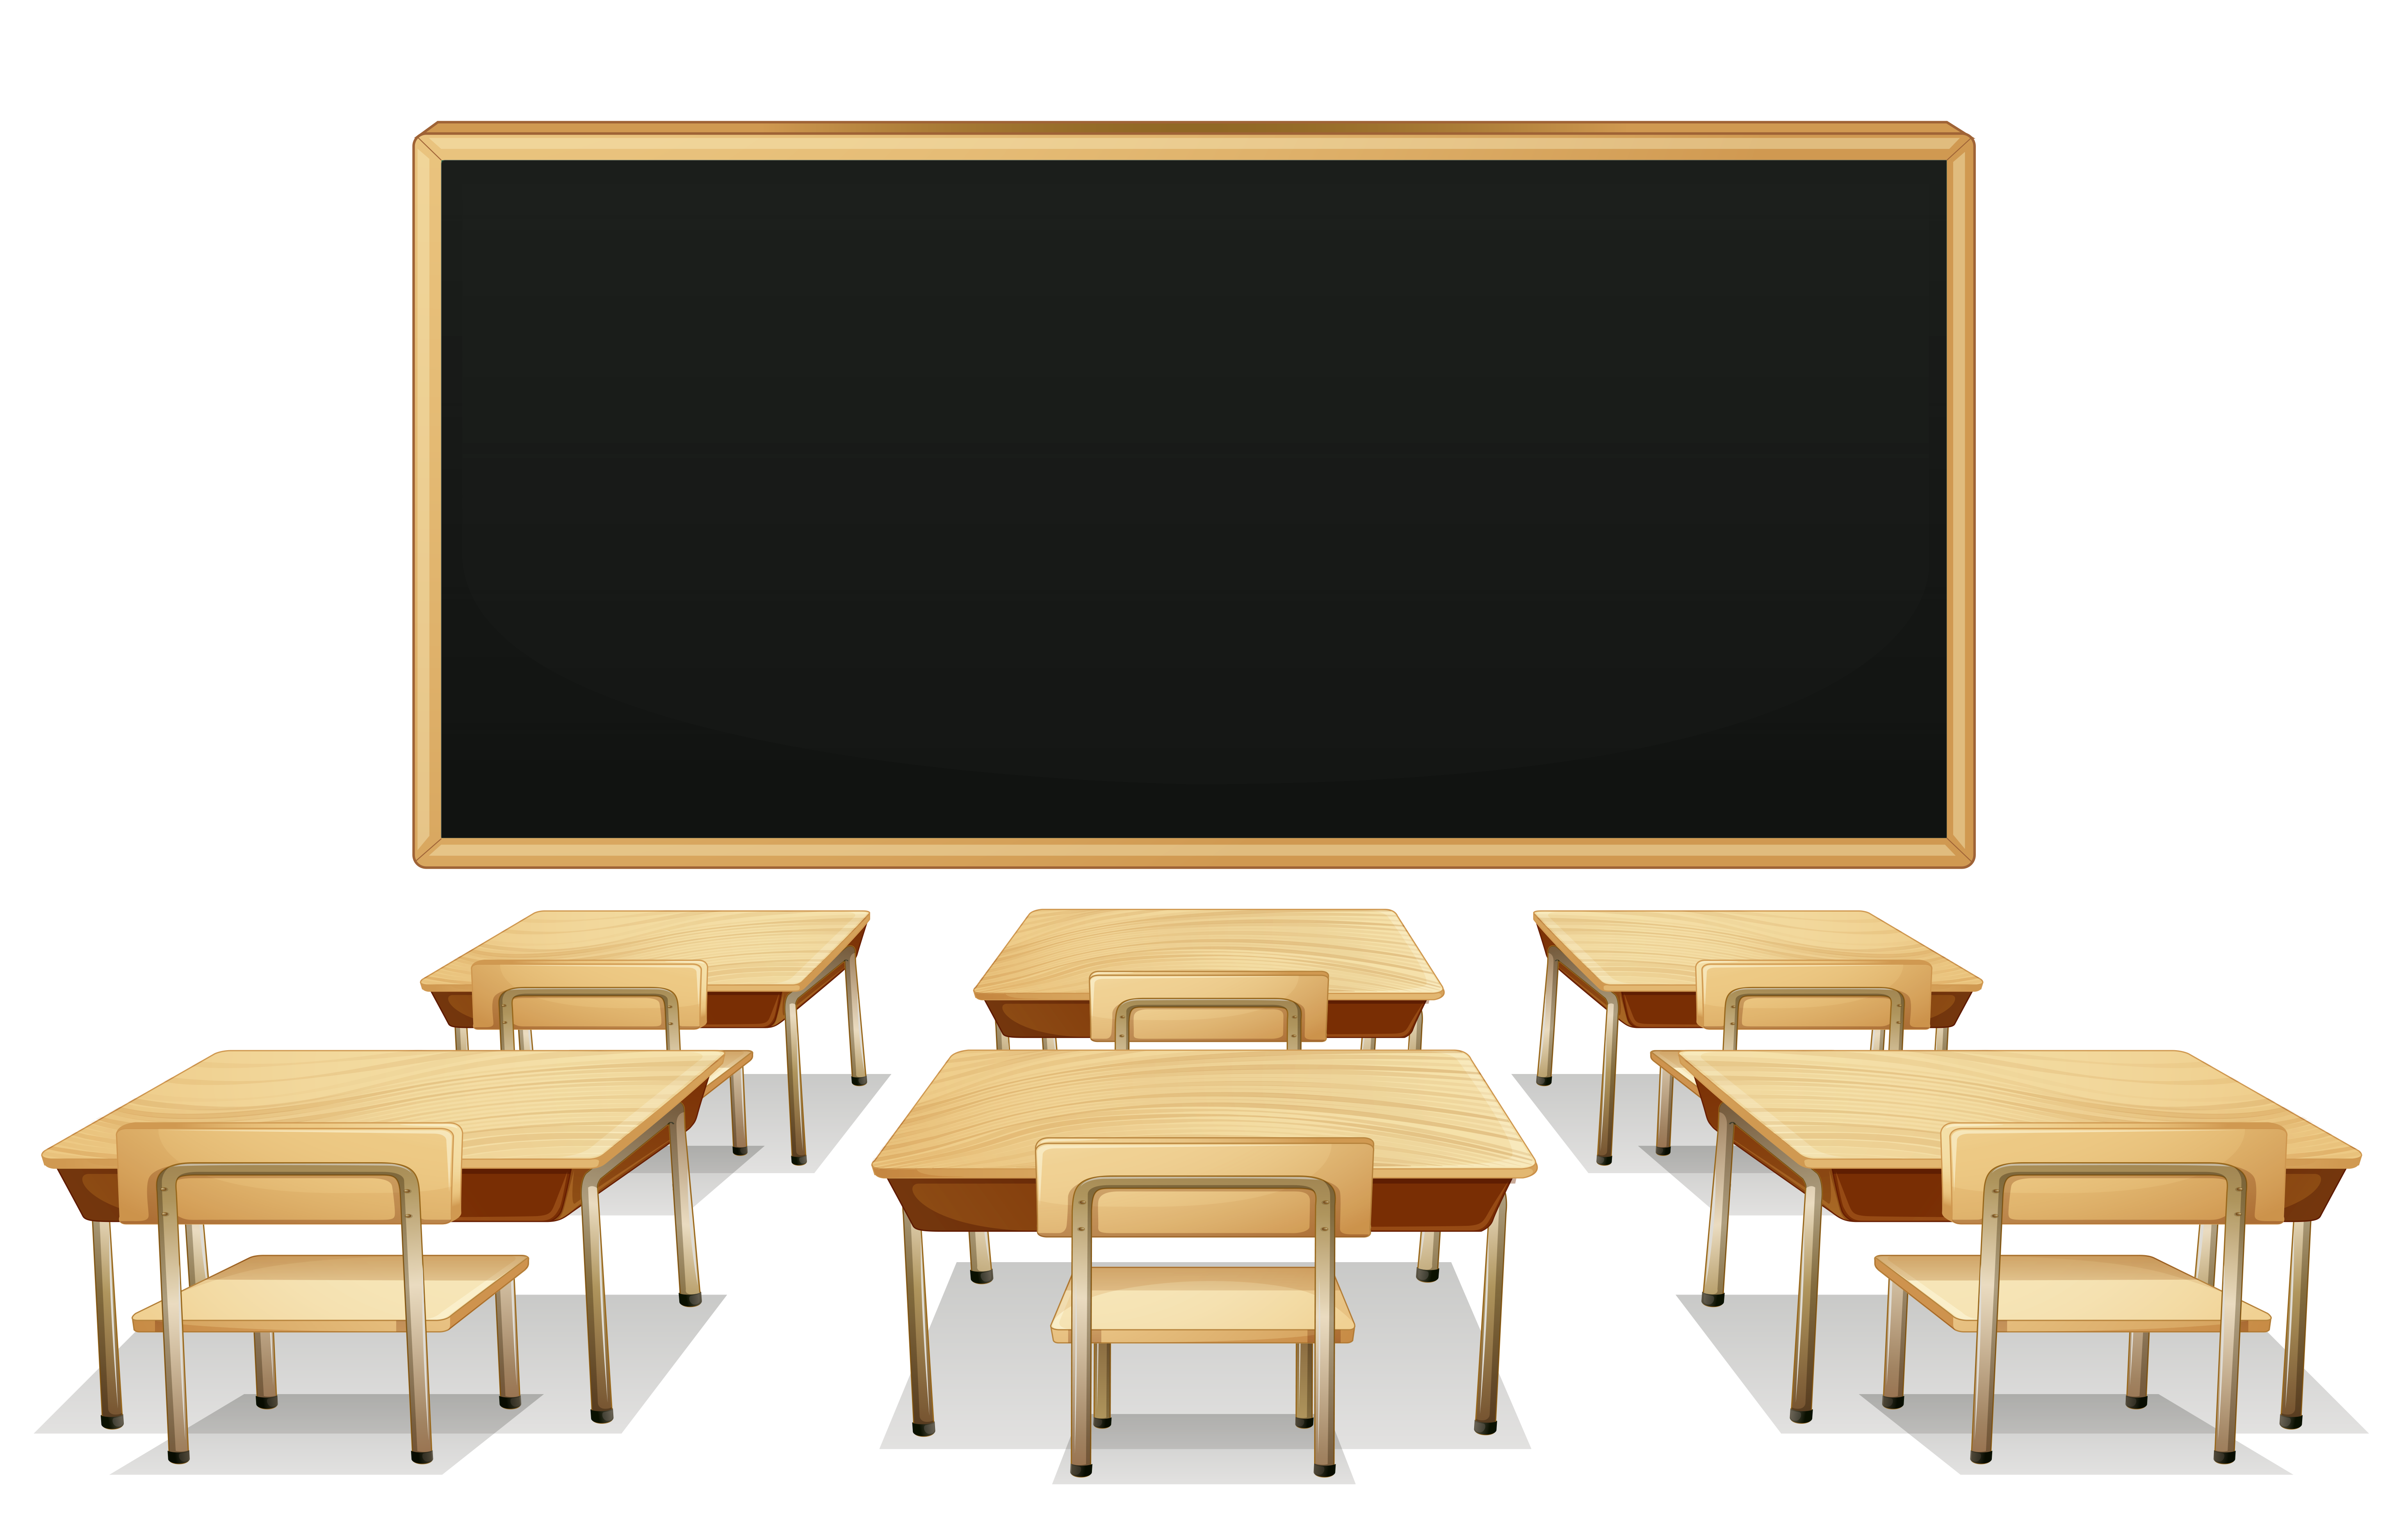 classroom clipart background